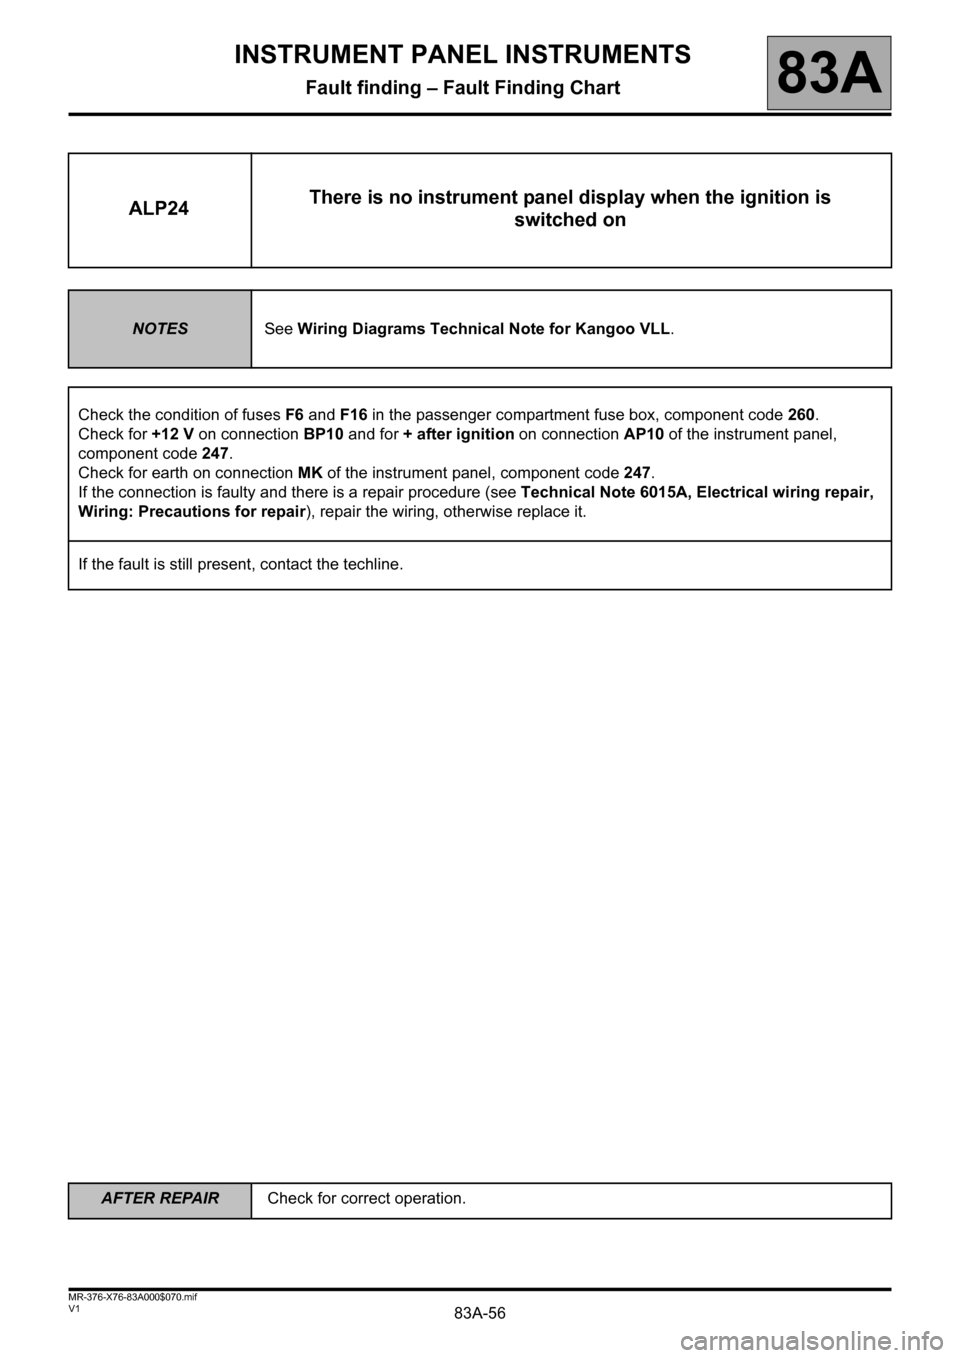 RENAULT KANGOO 2013 X61 / 2.G Instrument Panel Instruments Workshop Manual, Page 56